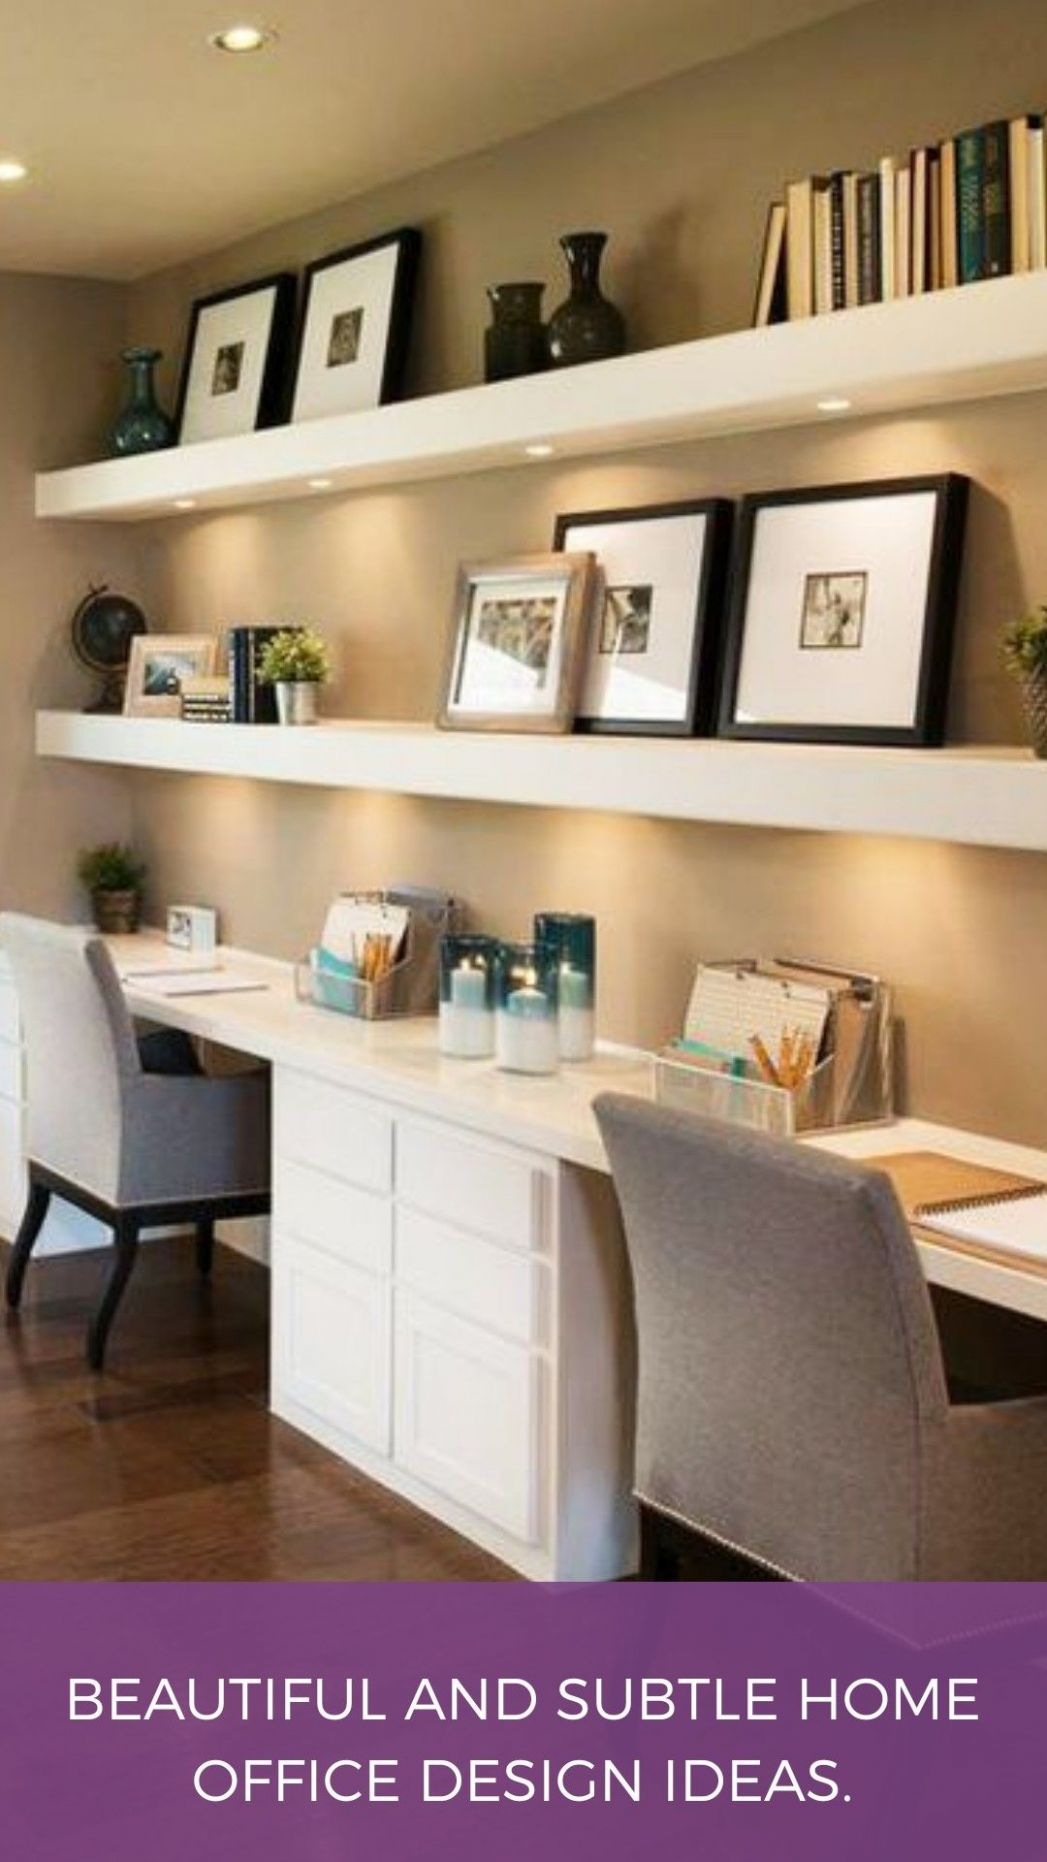 Beautiful and Subtle Home Office Design Ideas (With images ...